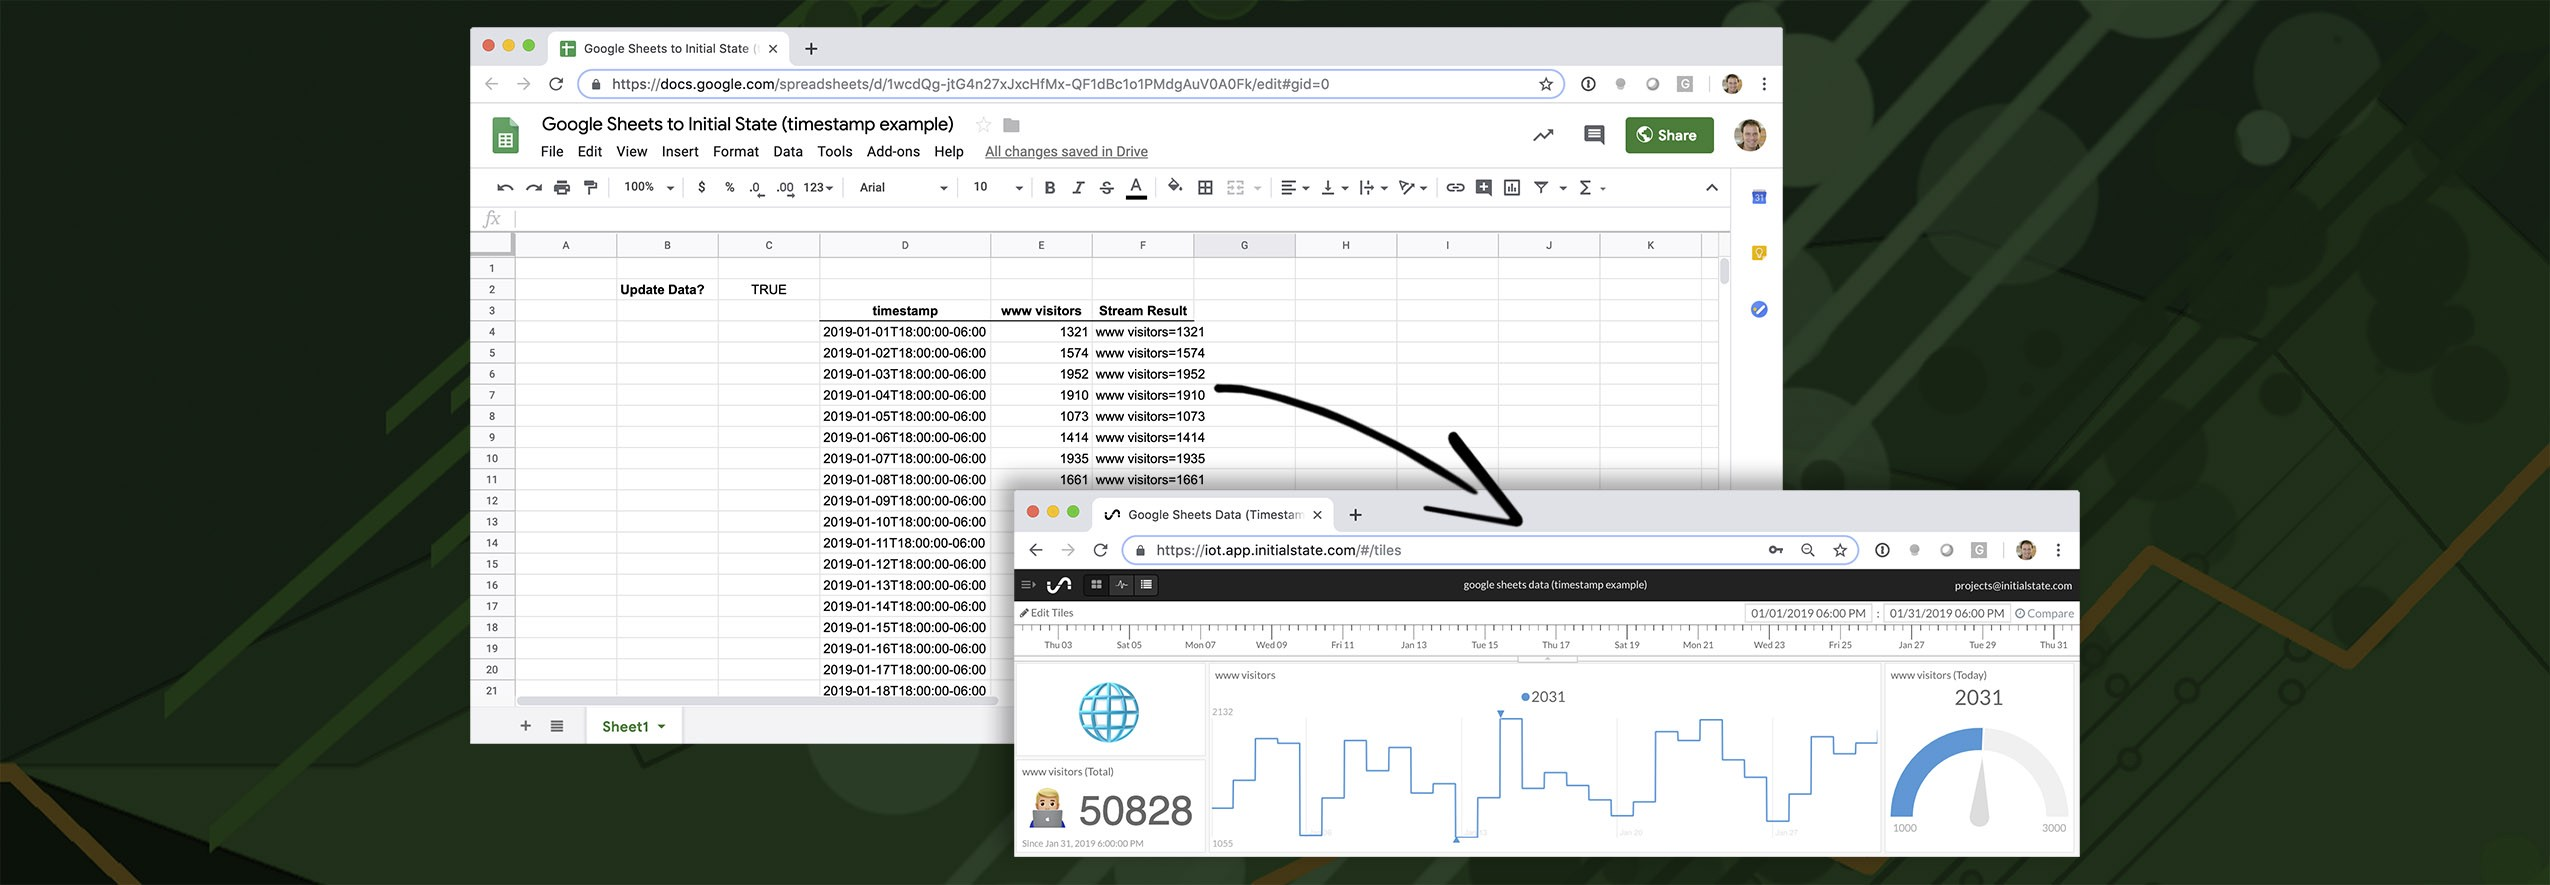 How to Stream Your Google Sheets Data to a Real-Time Dashboard